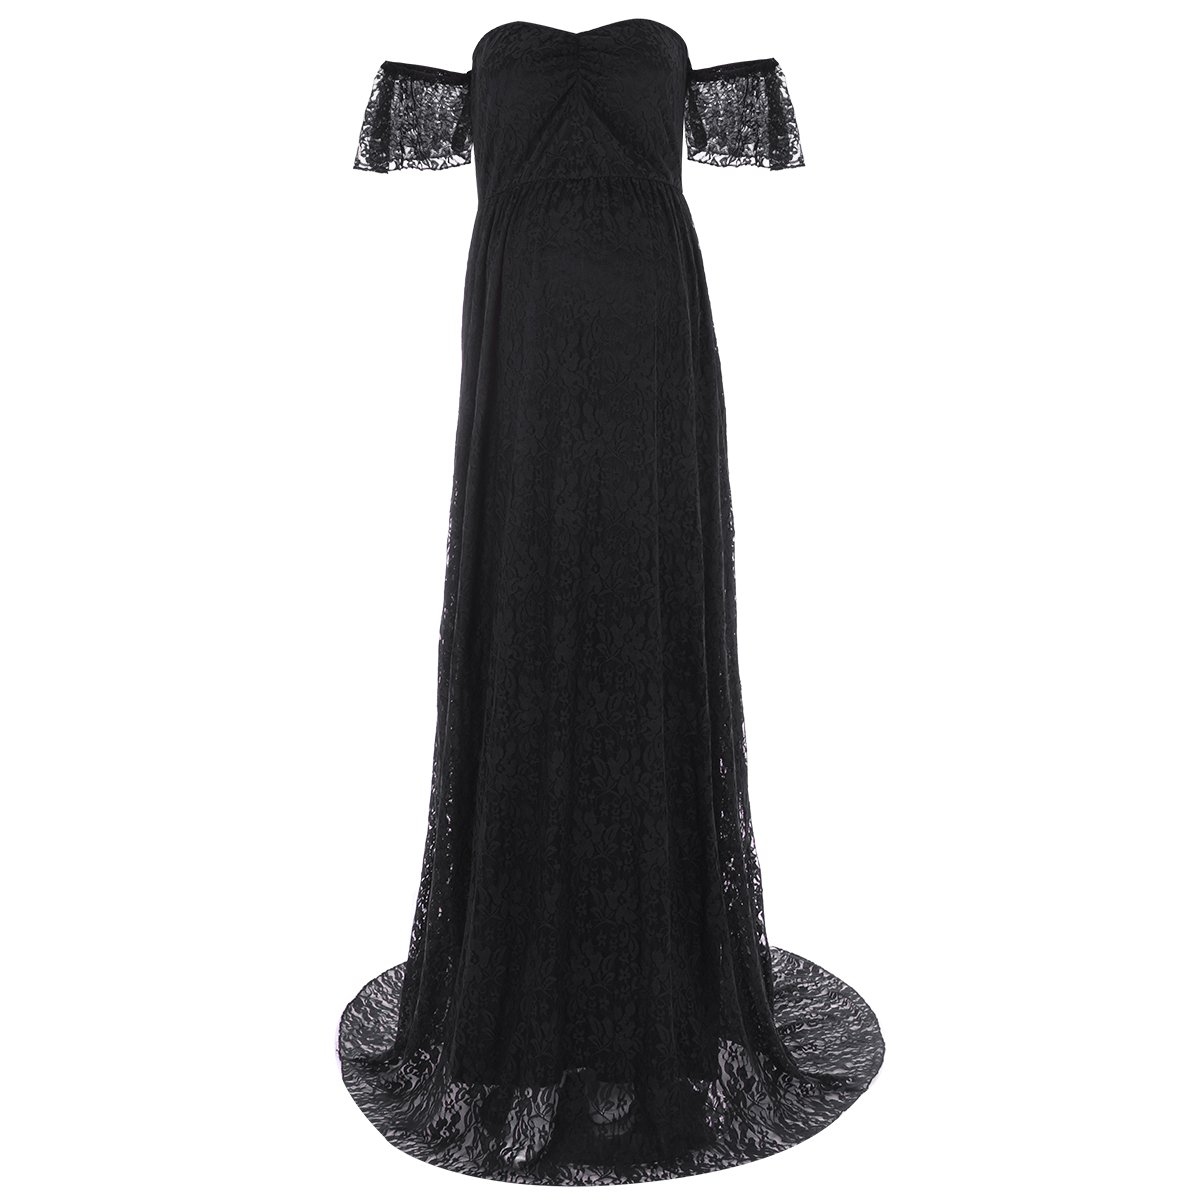 Black Baby Shower Long Dress: Amazon.com